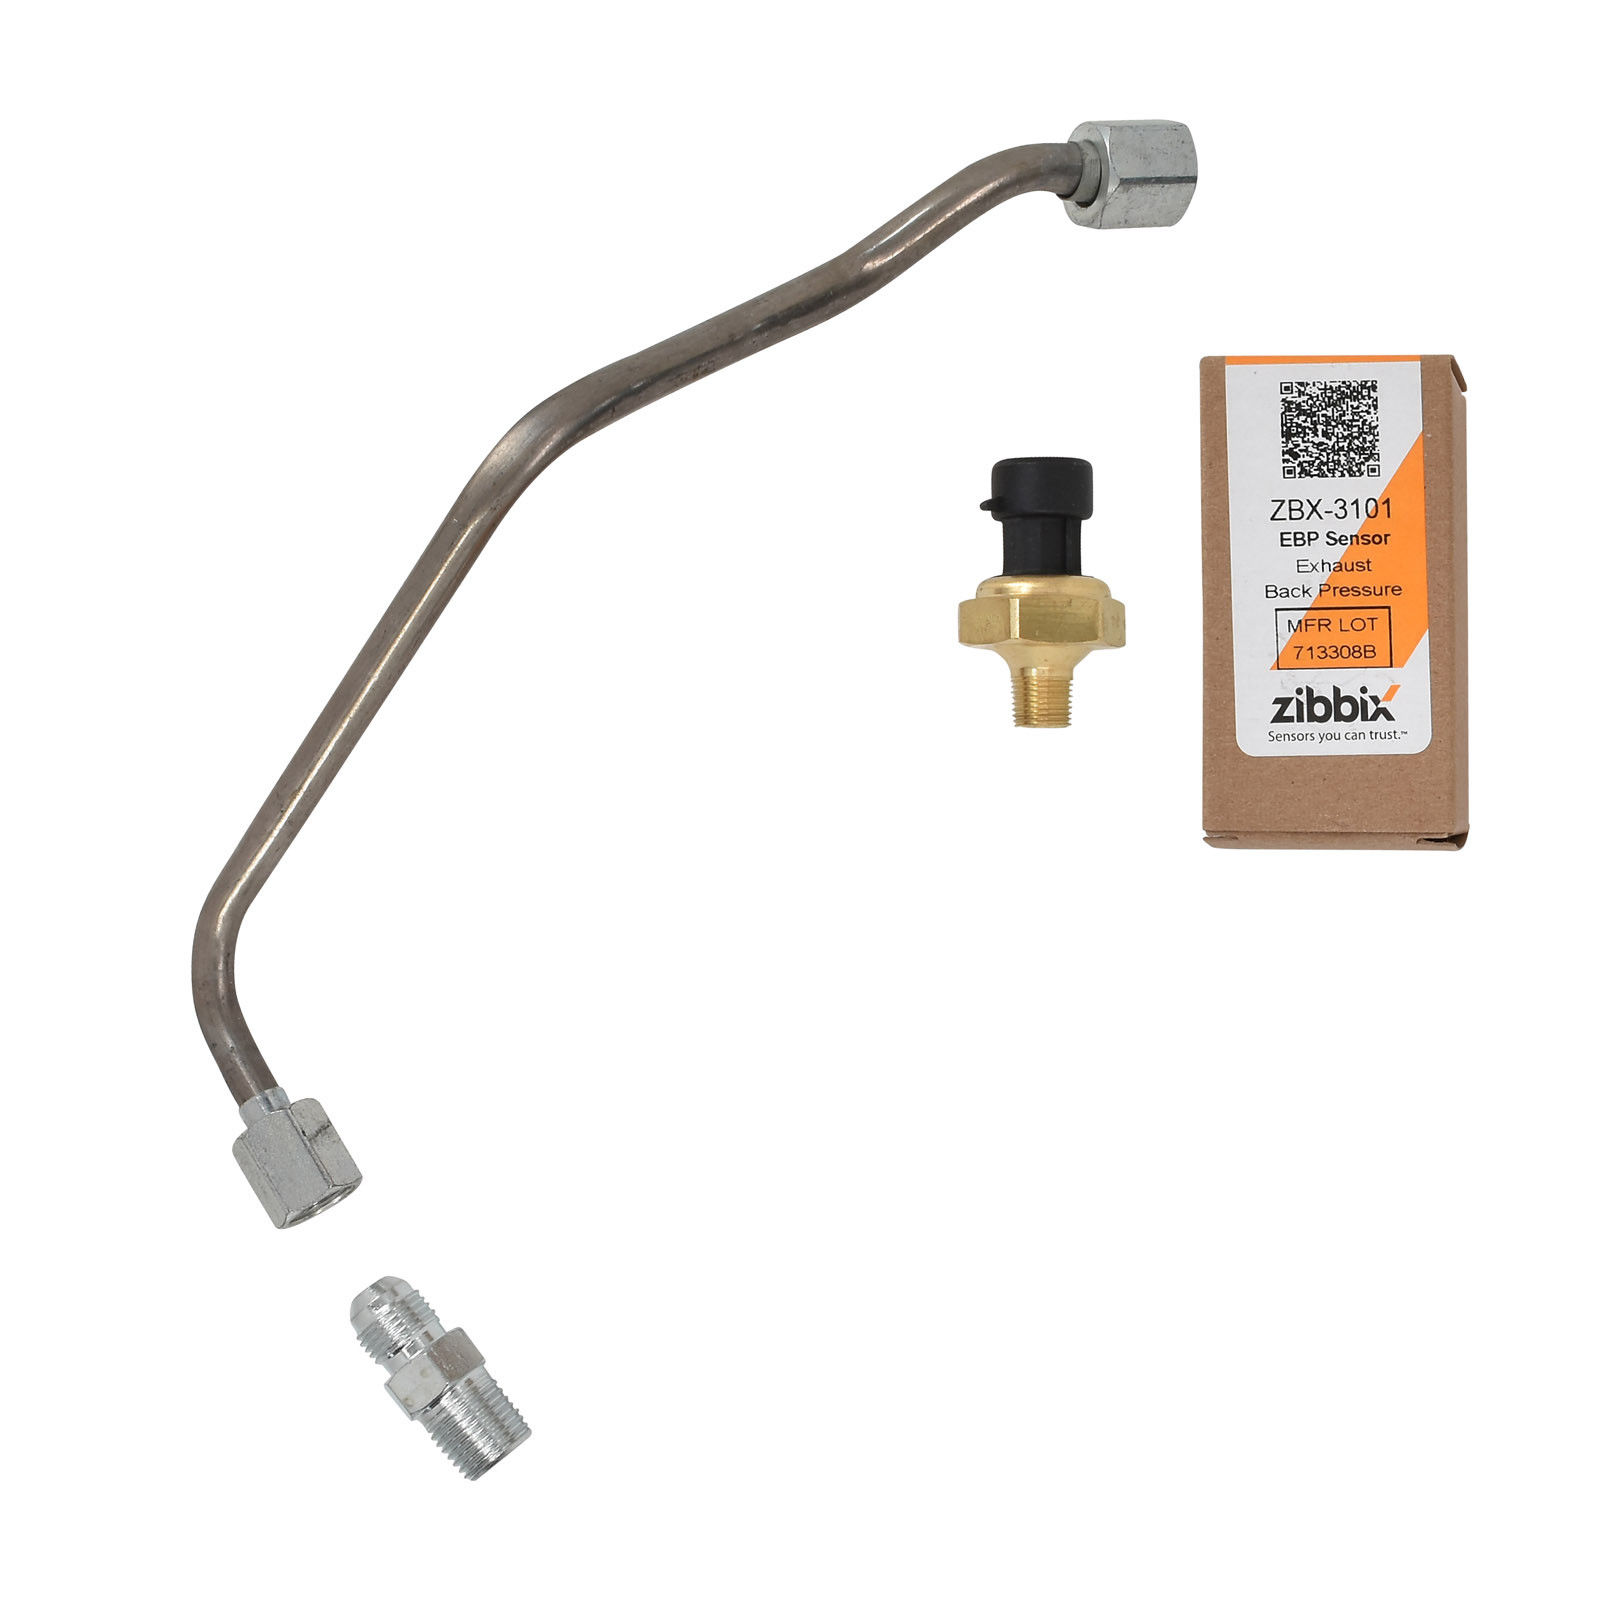 Zibbix ZBX-3101-TK3 EBP Exhaust Back Pressure Sensor Tube Kit For 03-04 6.0L Ford Powerstroke Diesel